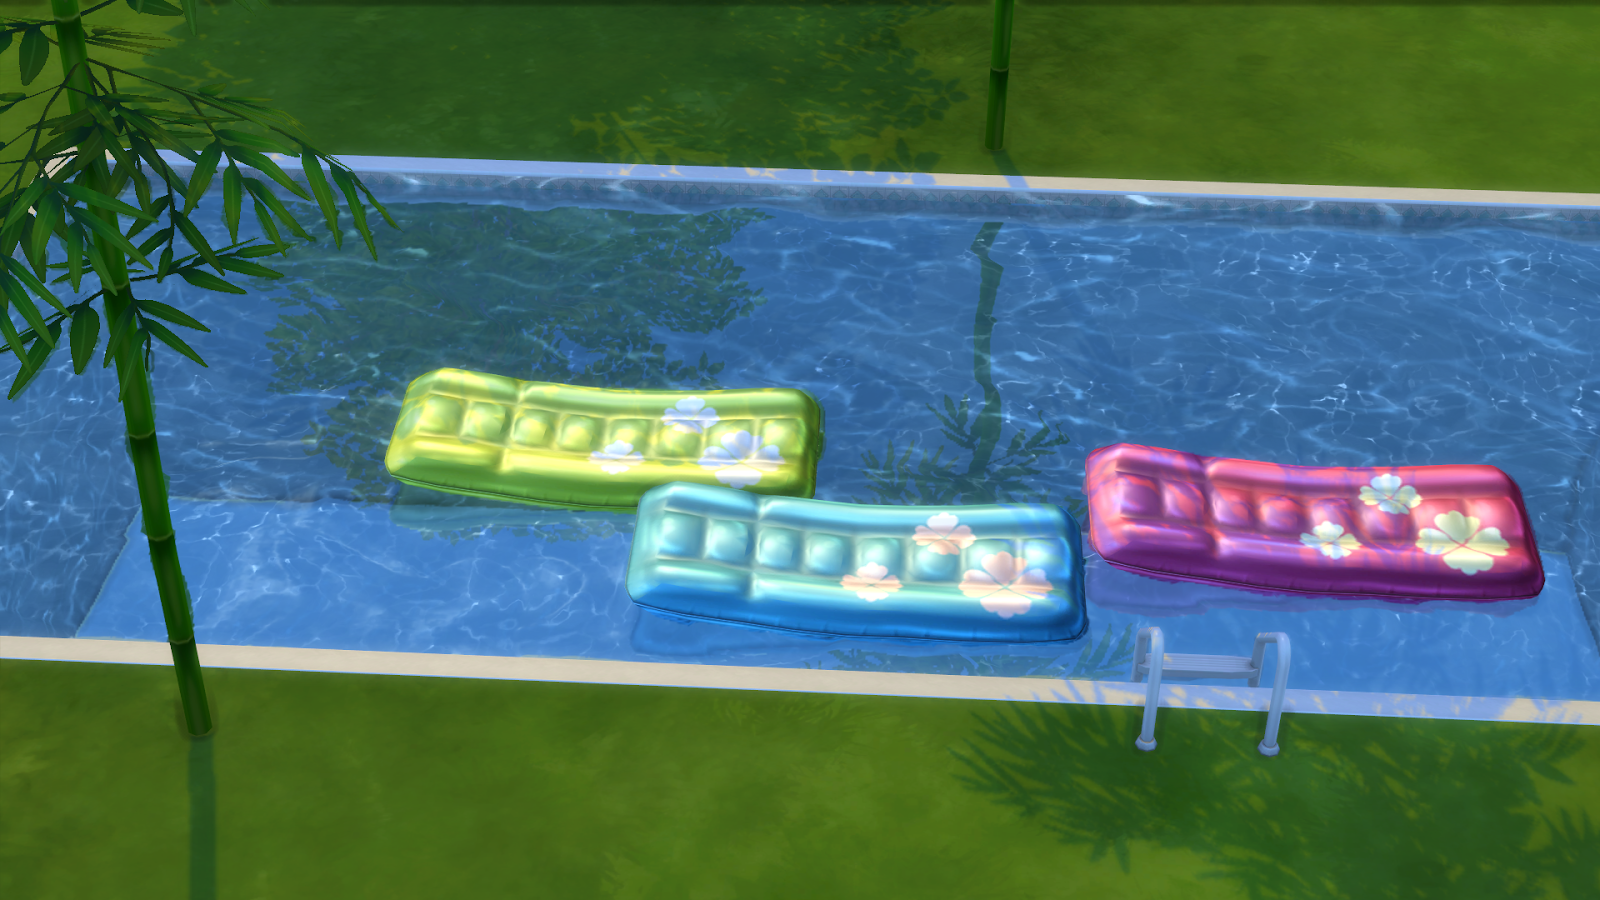 Cc for sims 4 pool deco s4 plage piscine pinterest for Pool designs sims 4